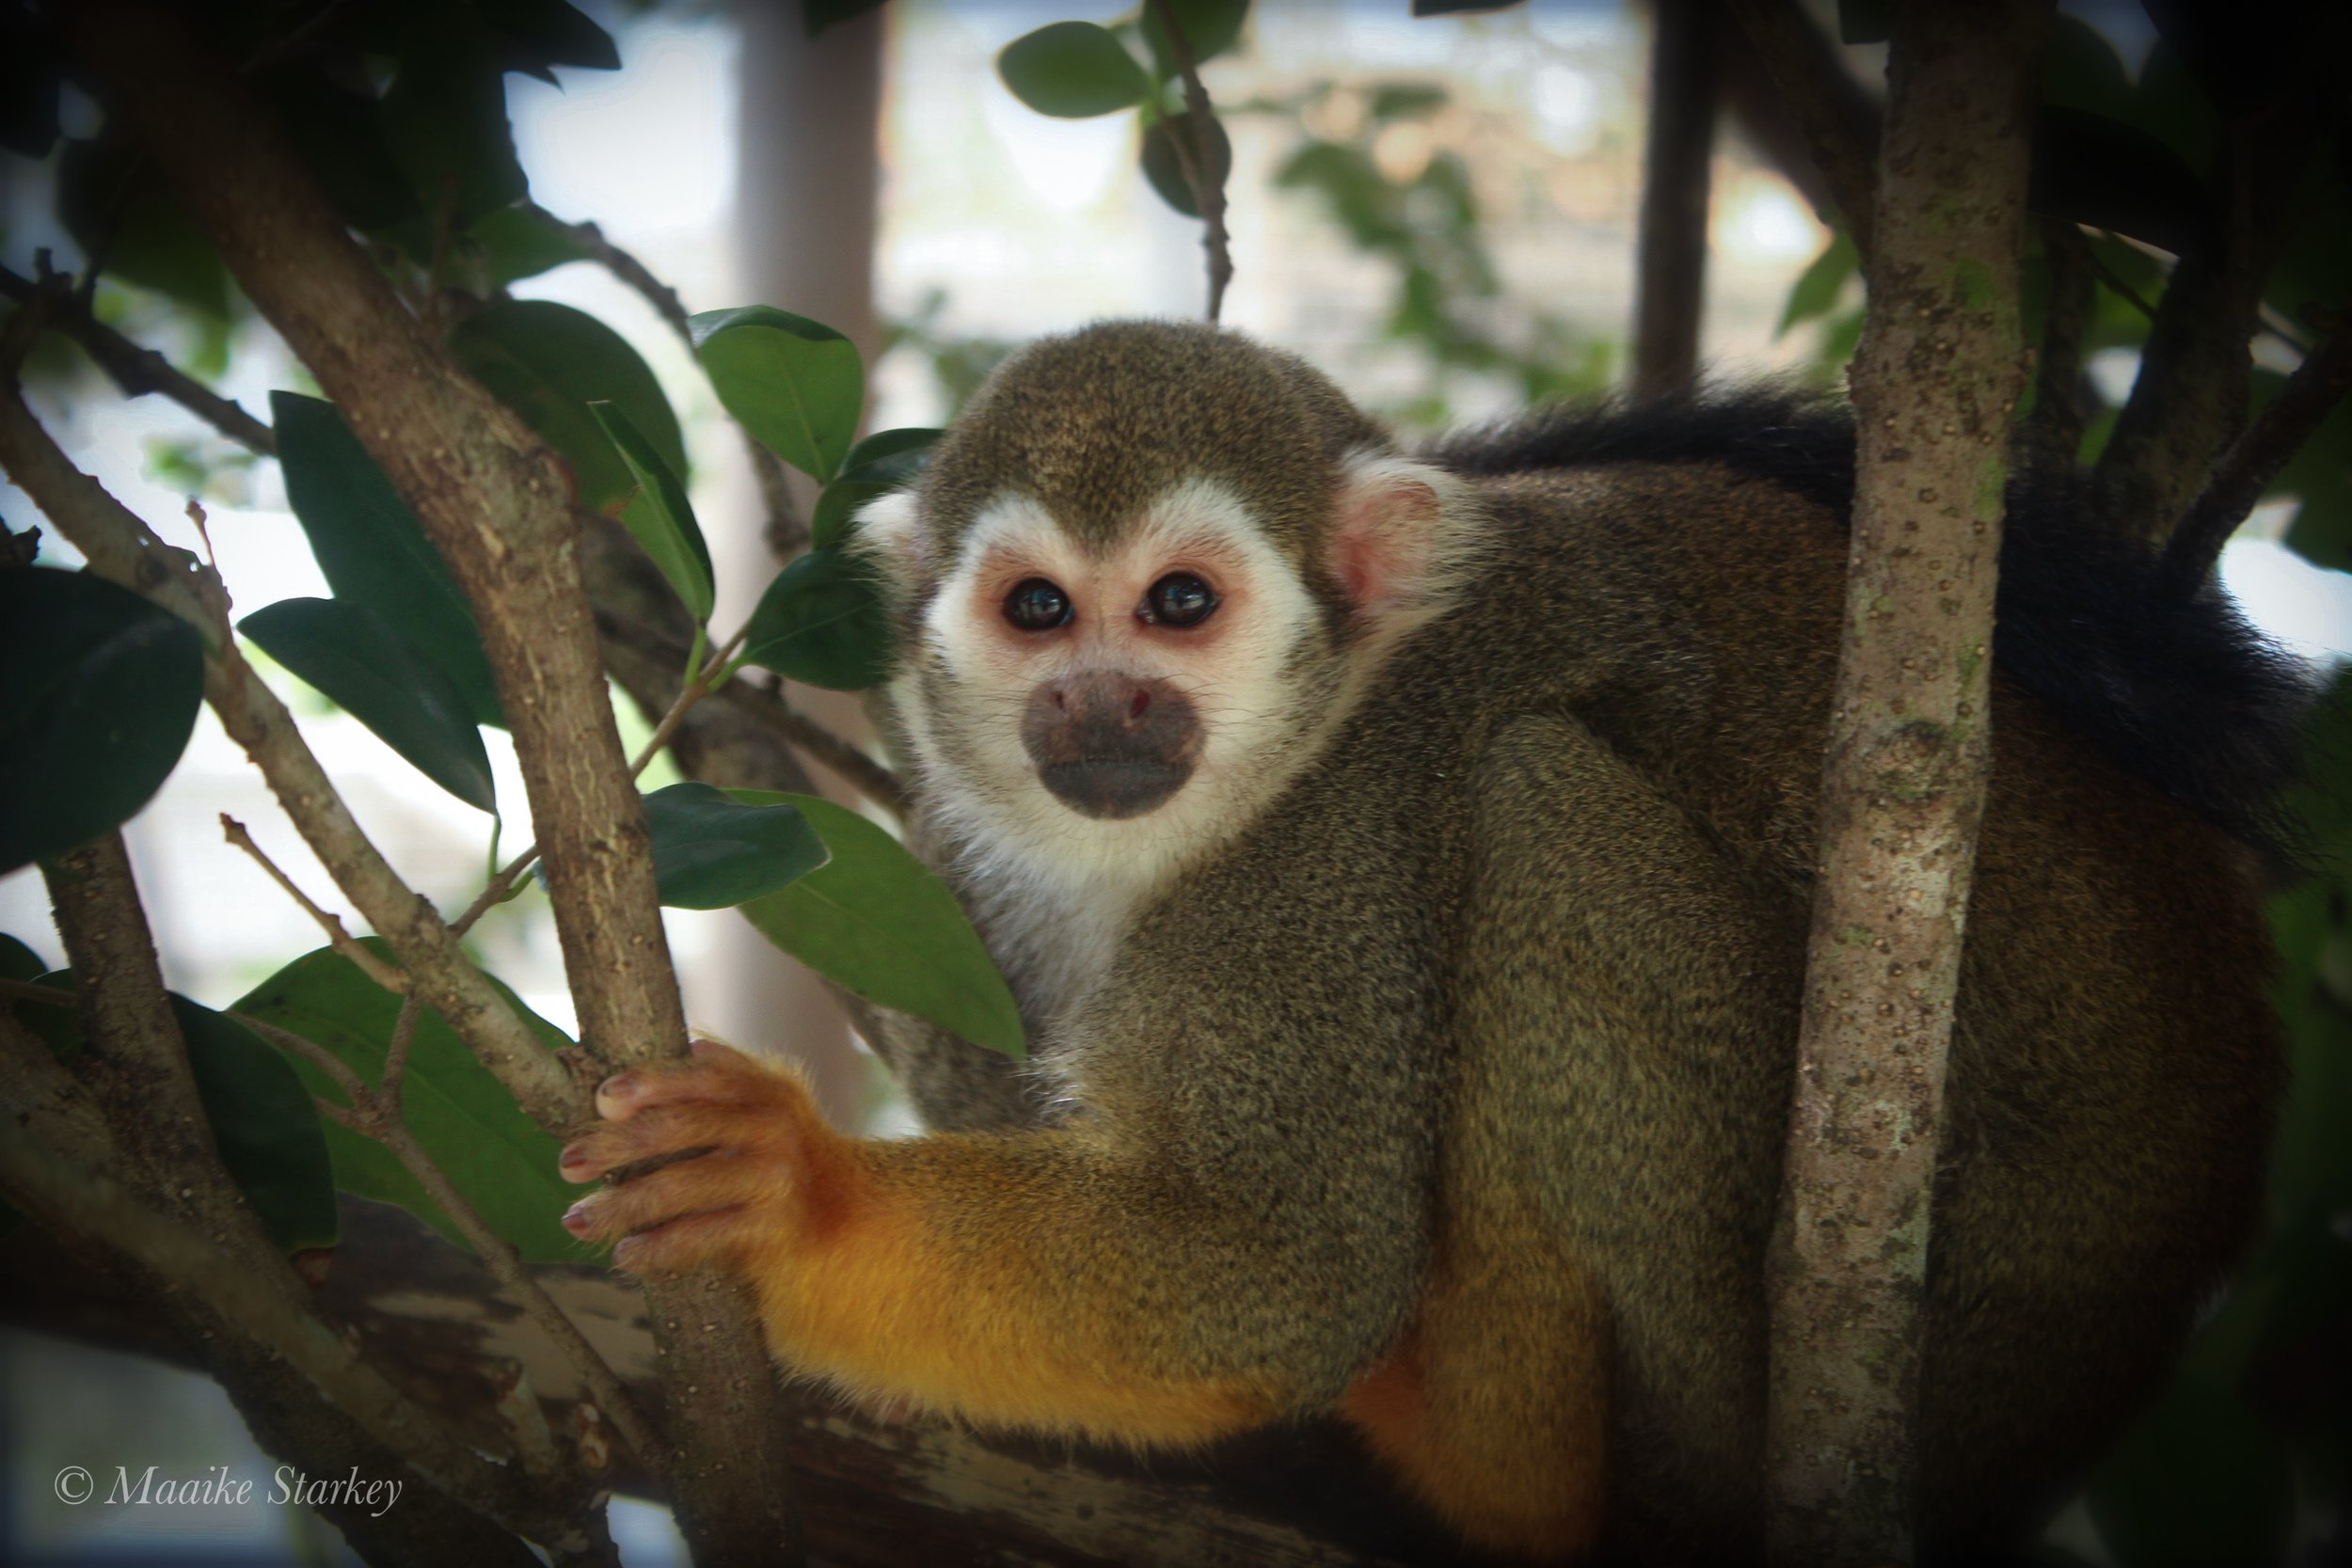 Squirrel Monkey Haven (SMH) - An enriching lifelong home for squirrel monkeys retired from research.